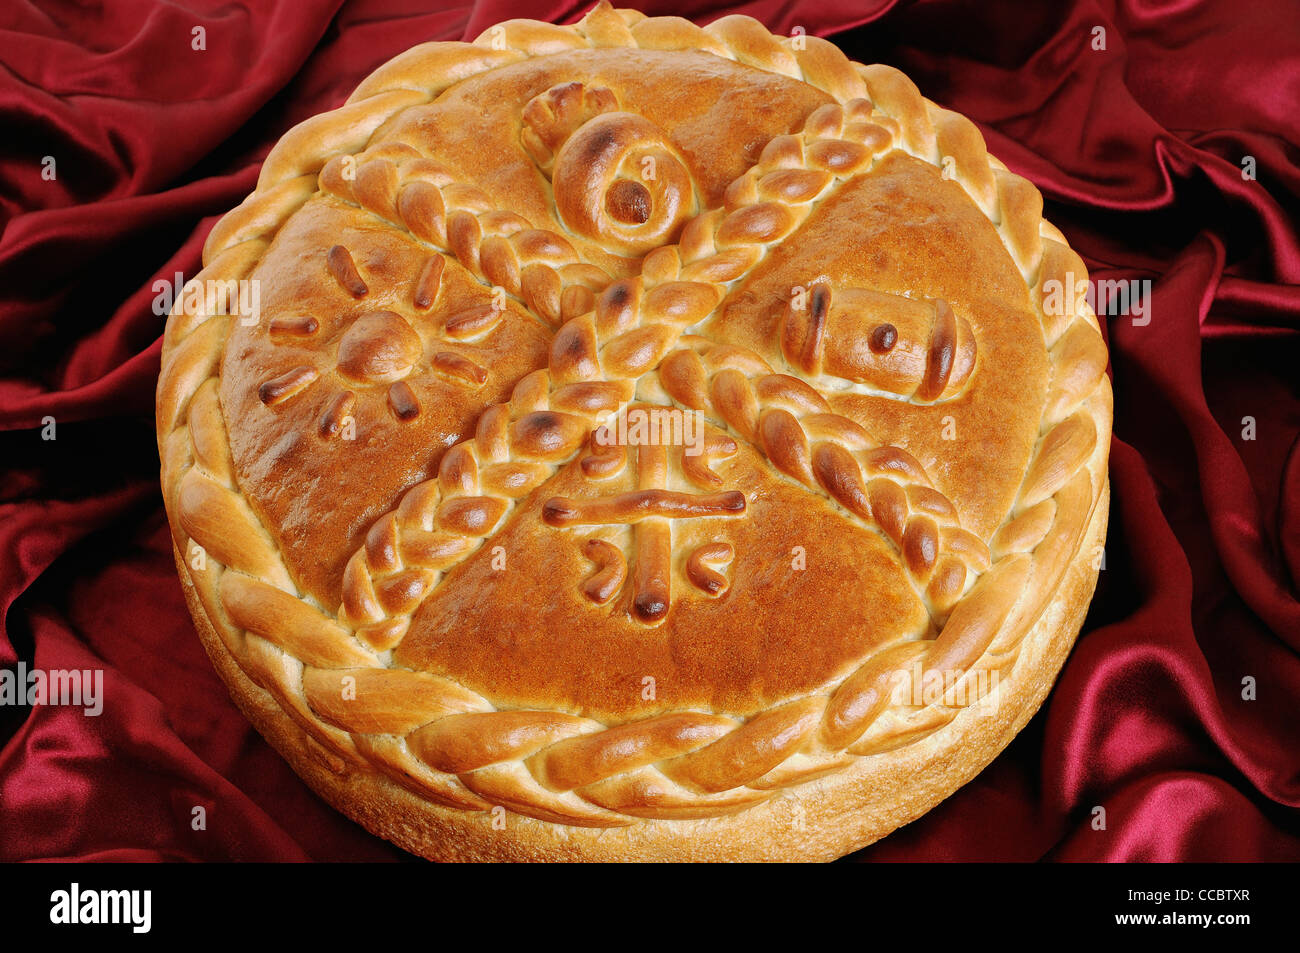 Serbian Orthodox Traditional Christmas Bread Known as a Cesnica. - Stock Image